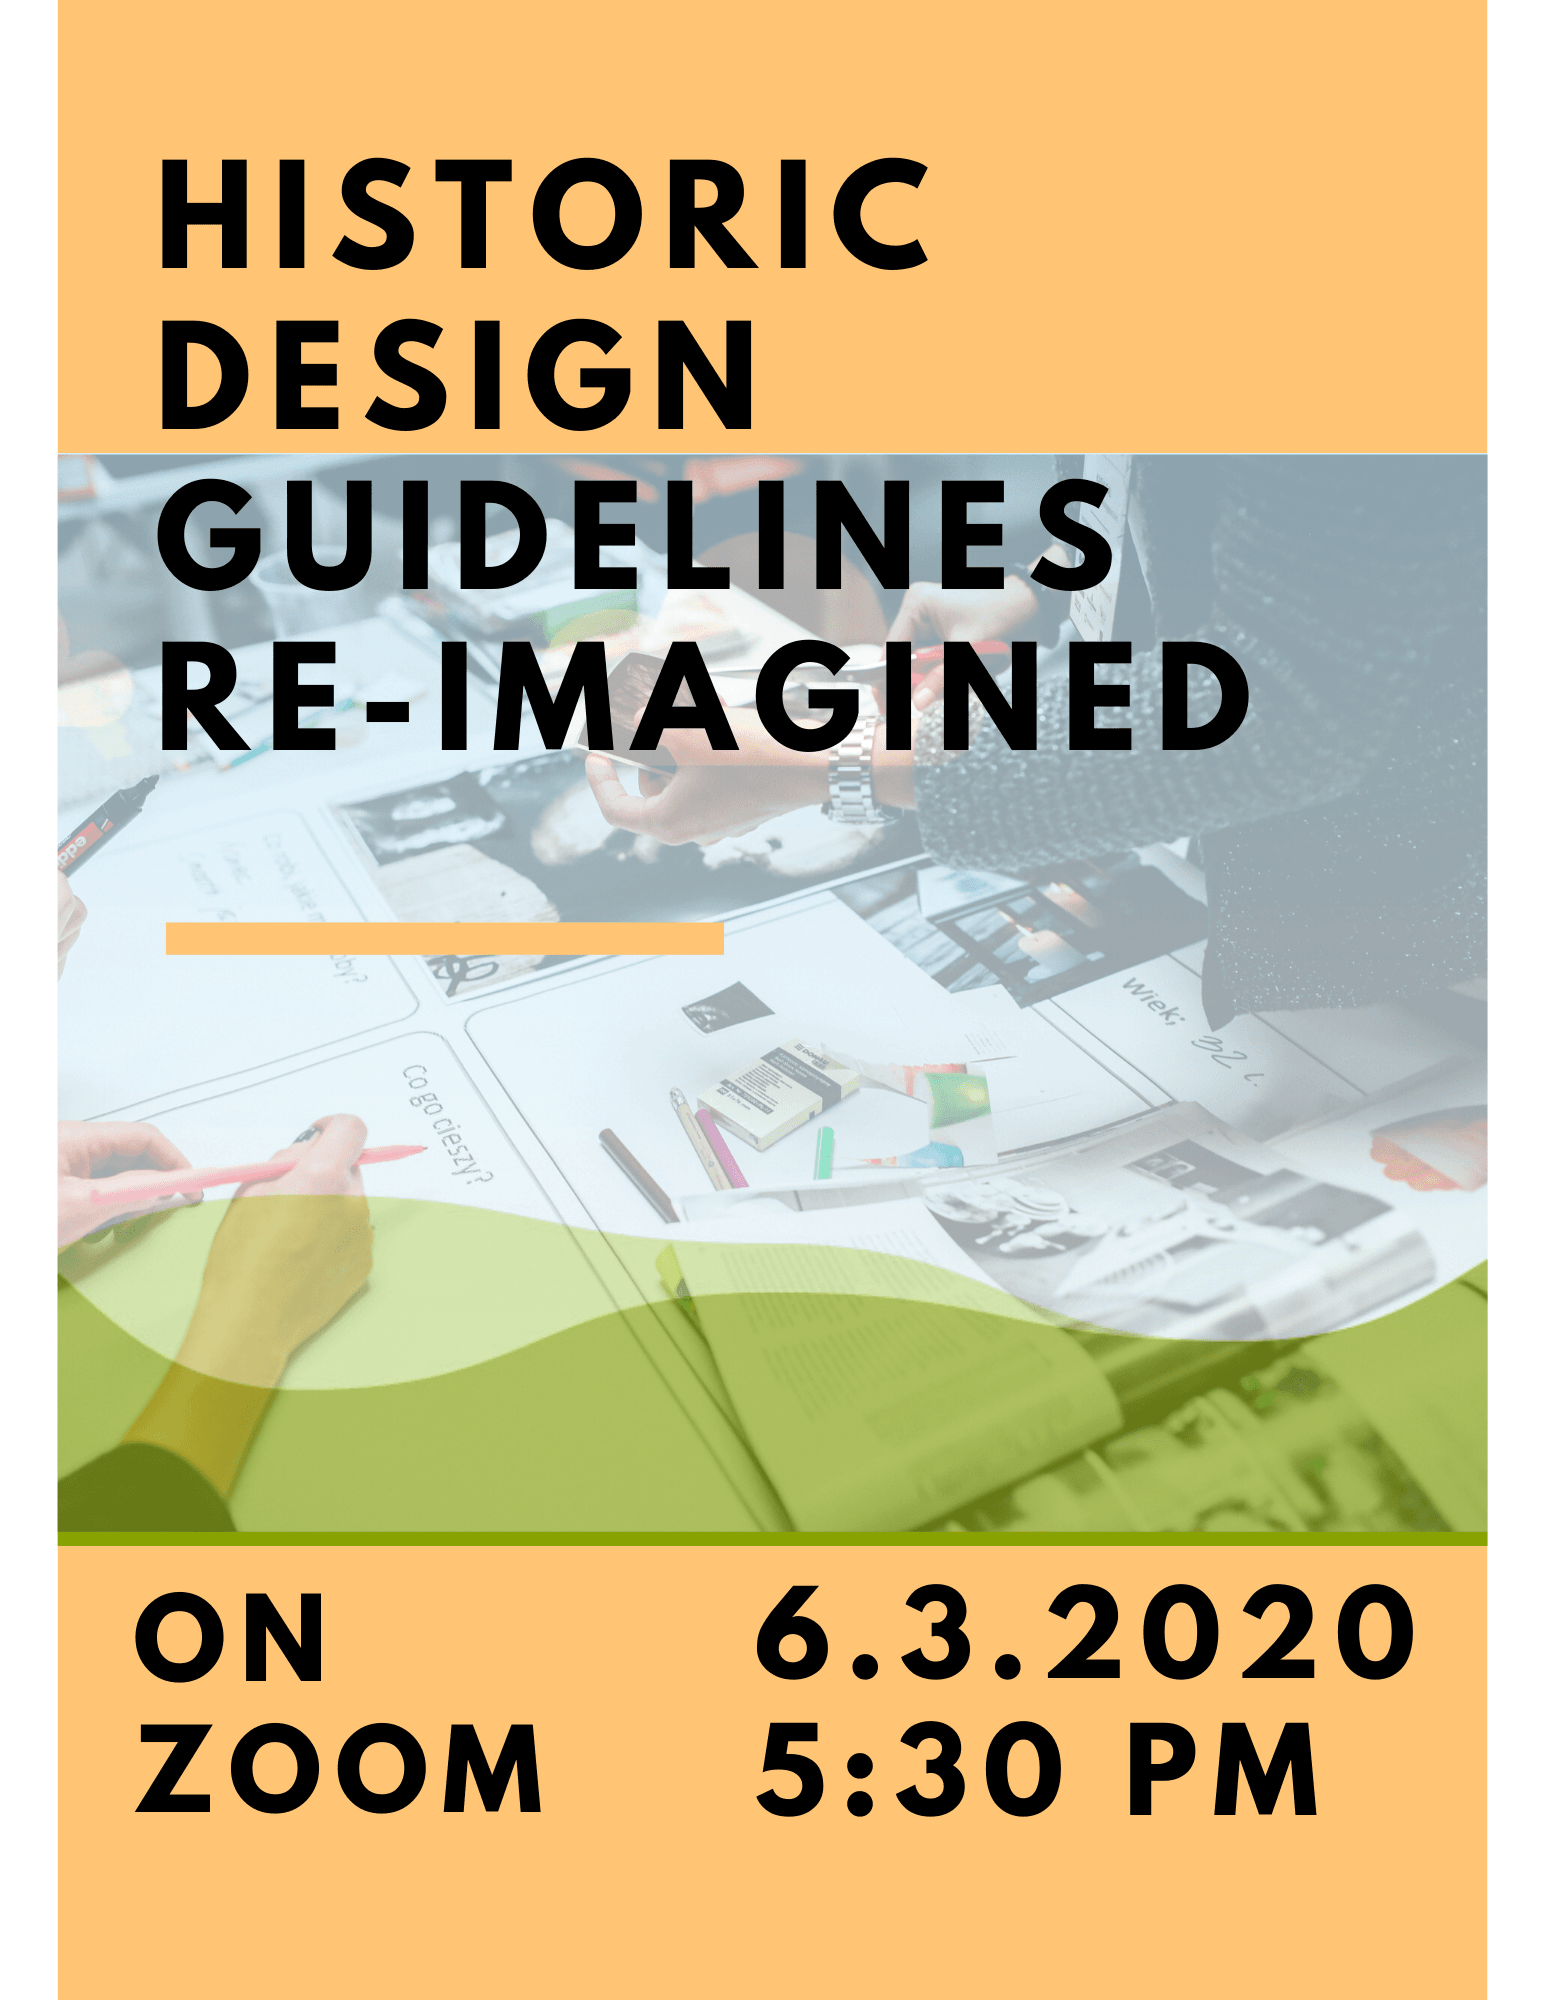 Historic Design Guidelines Re-Imagined on Zoom Wednesday at 5:30 p.m.